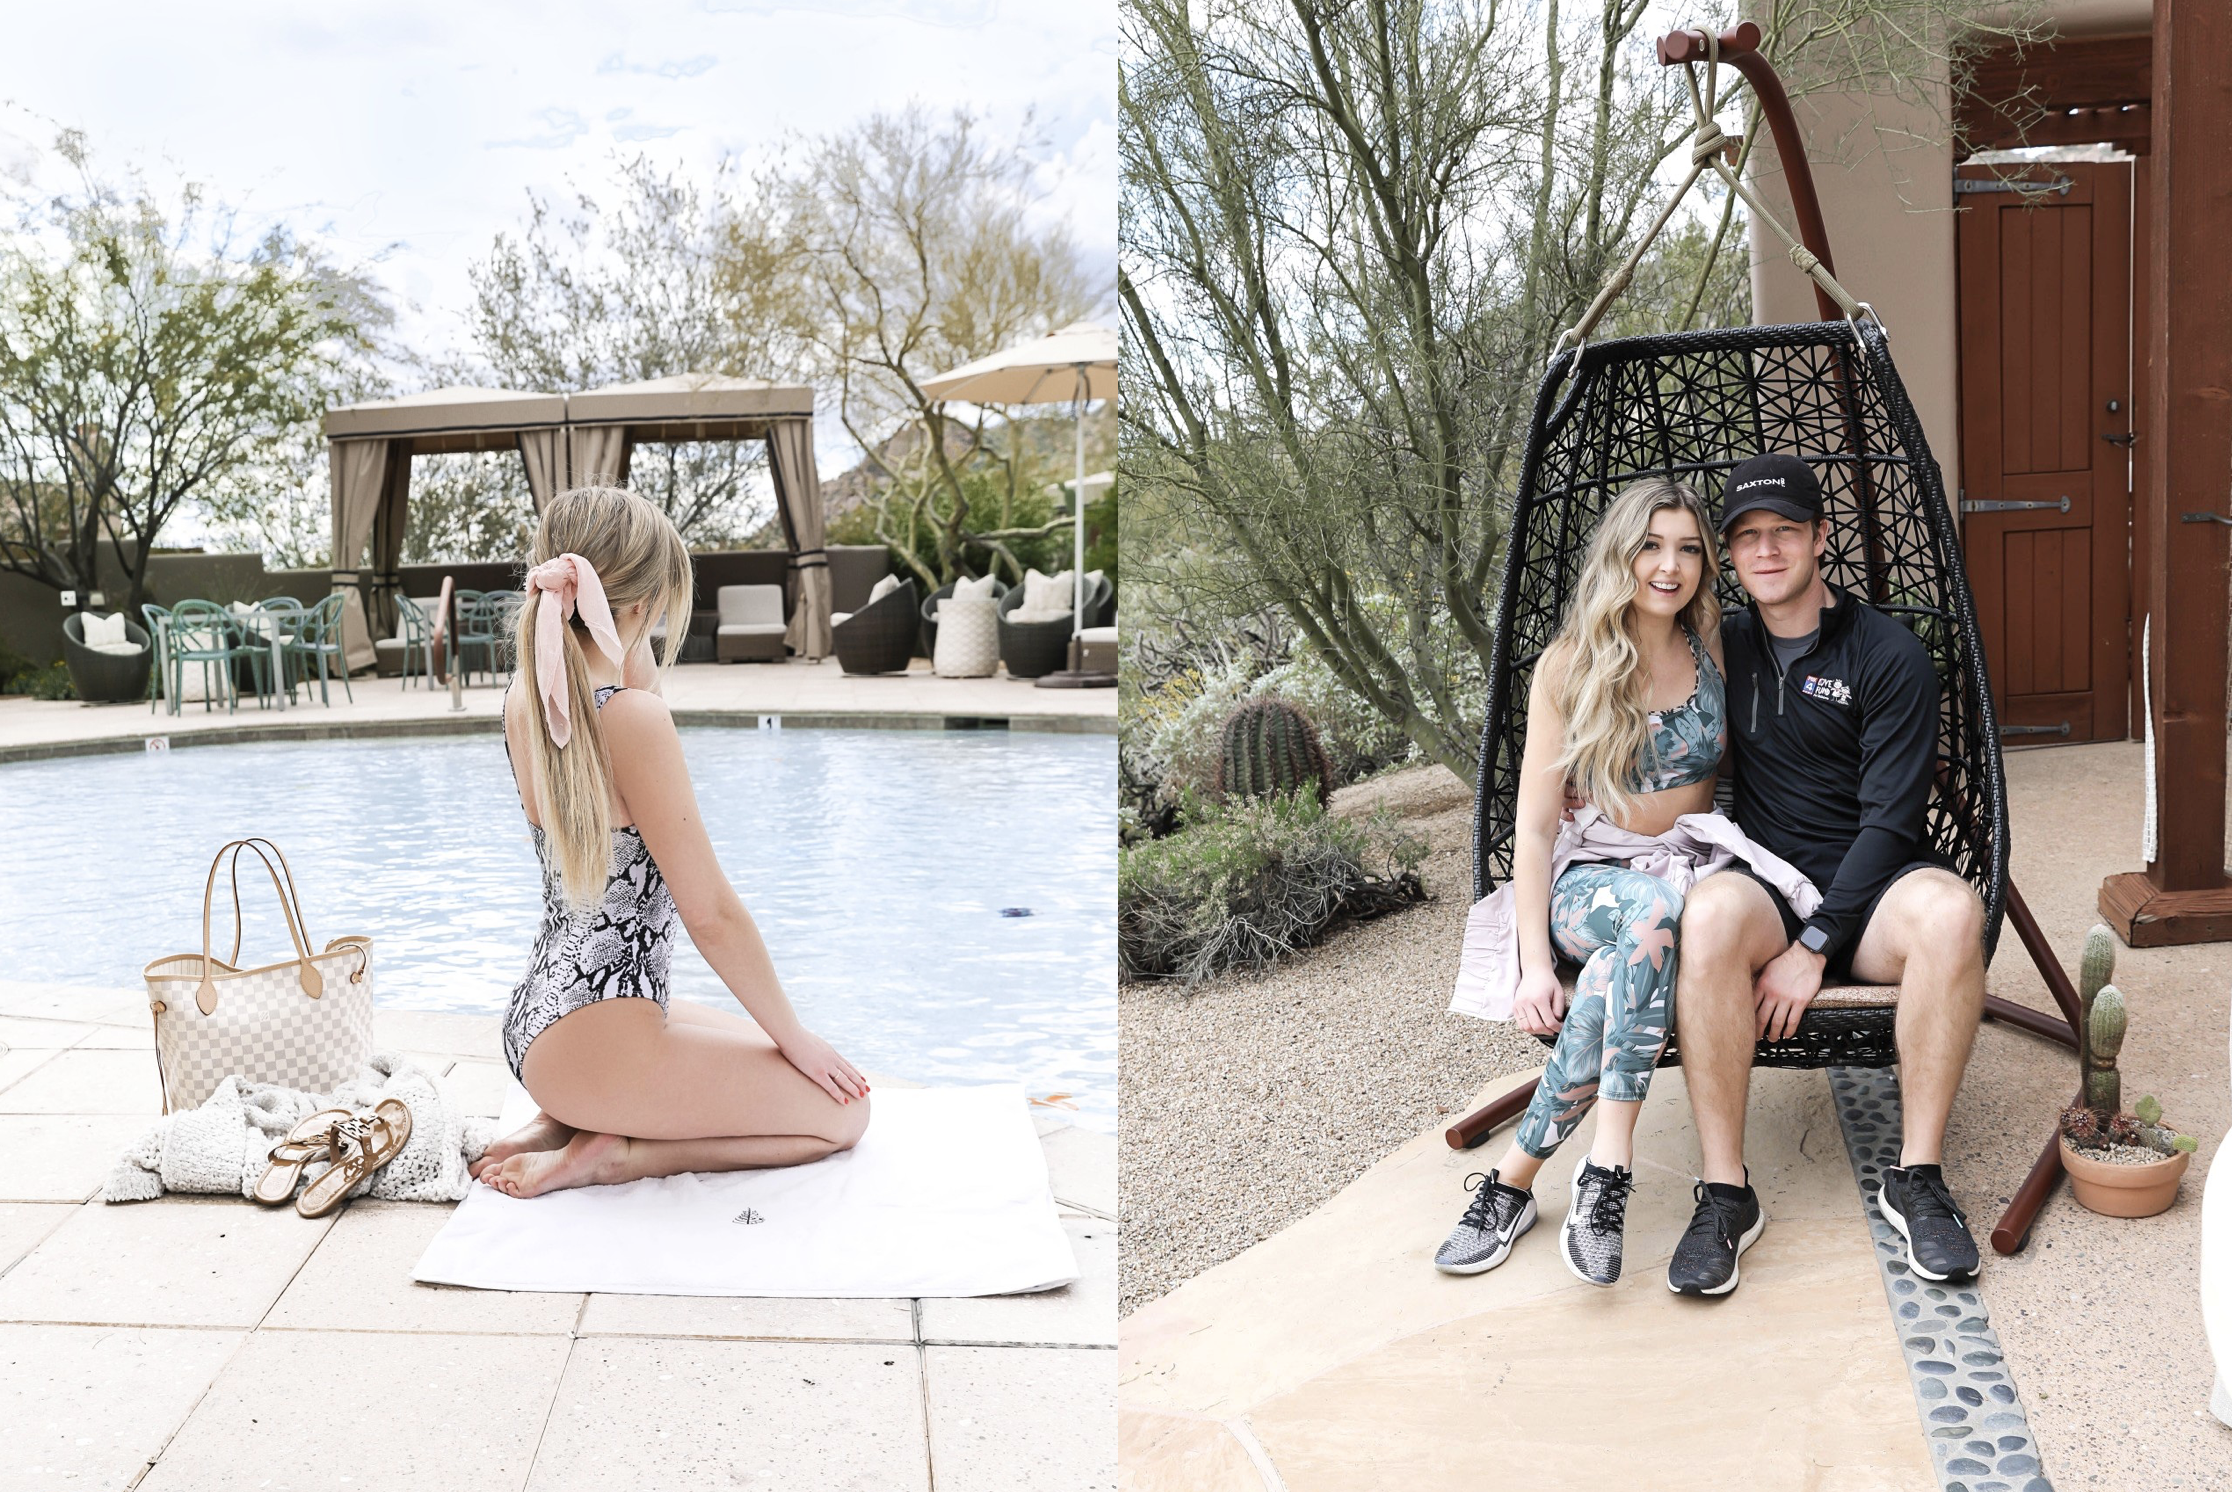 outfits scottsdale arizona four seasons fashion blog daily dose of charm lauren lindmark